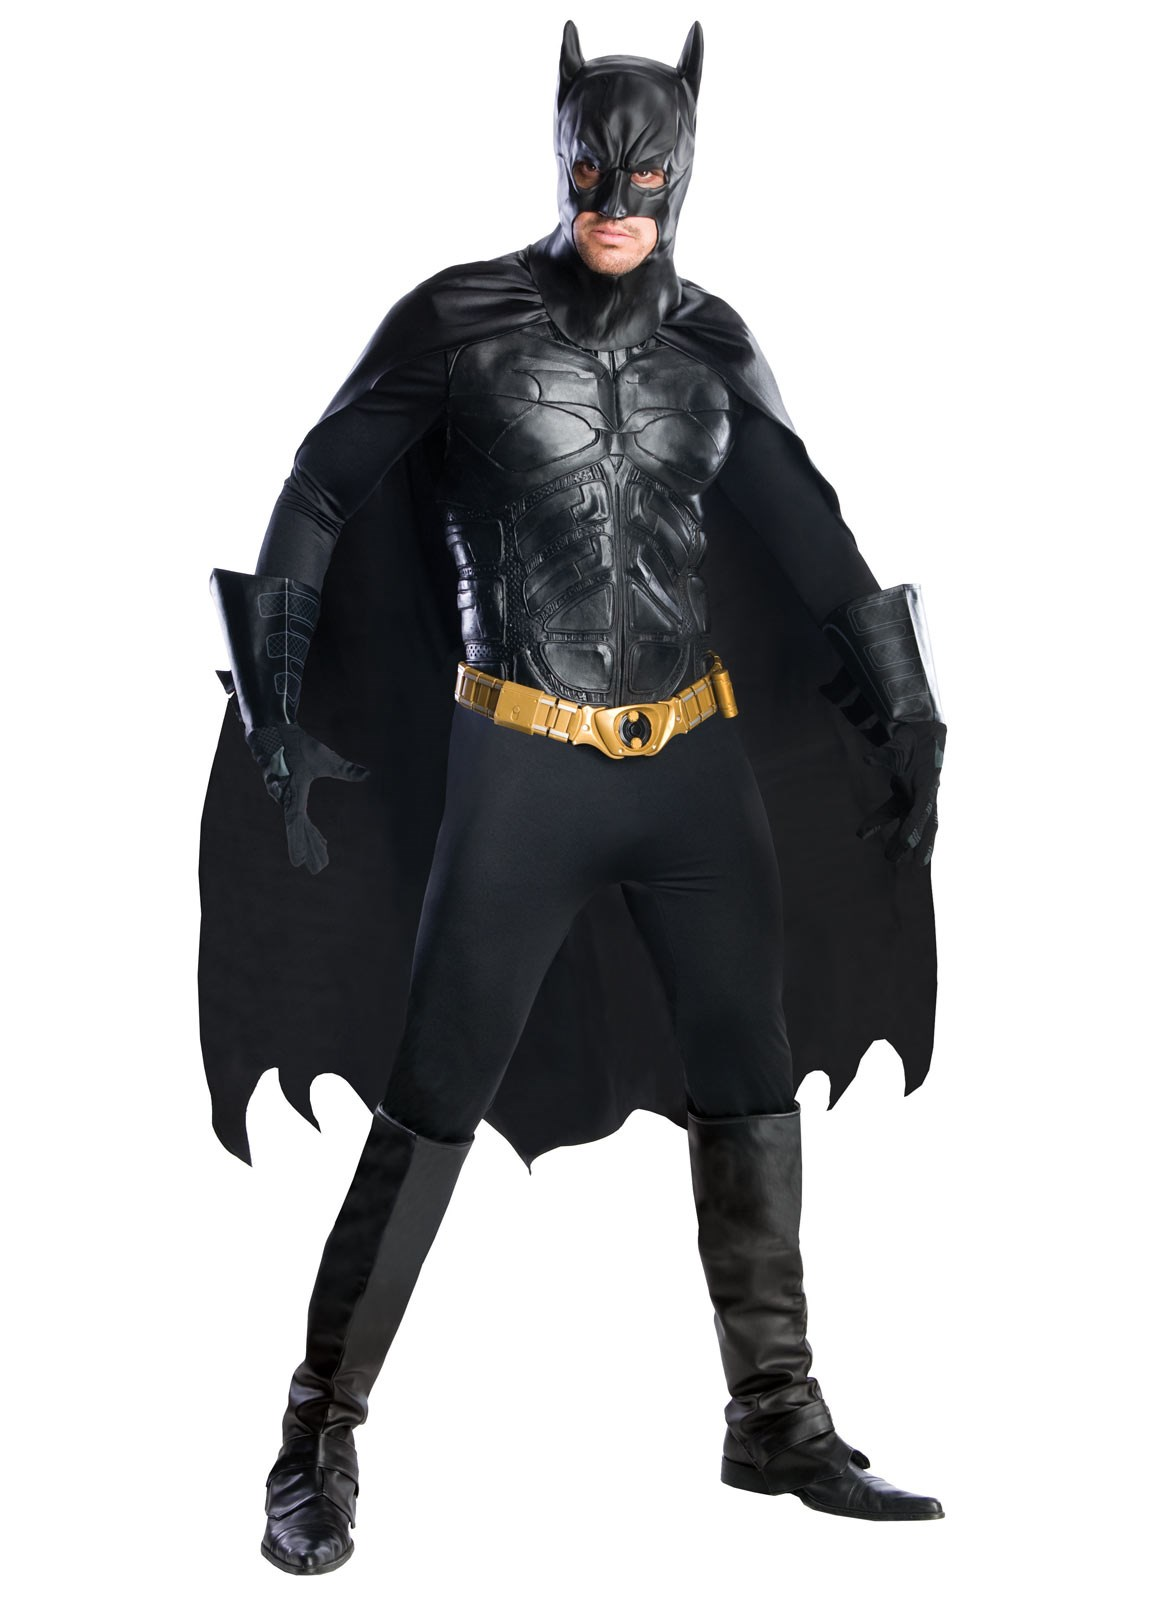 Find great deals on eBay for batman costume adult. Shop with confidence.